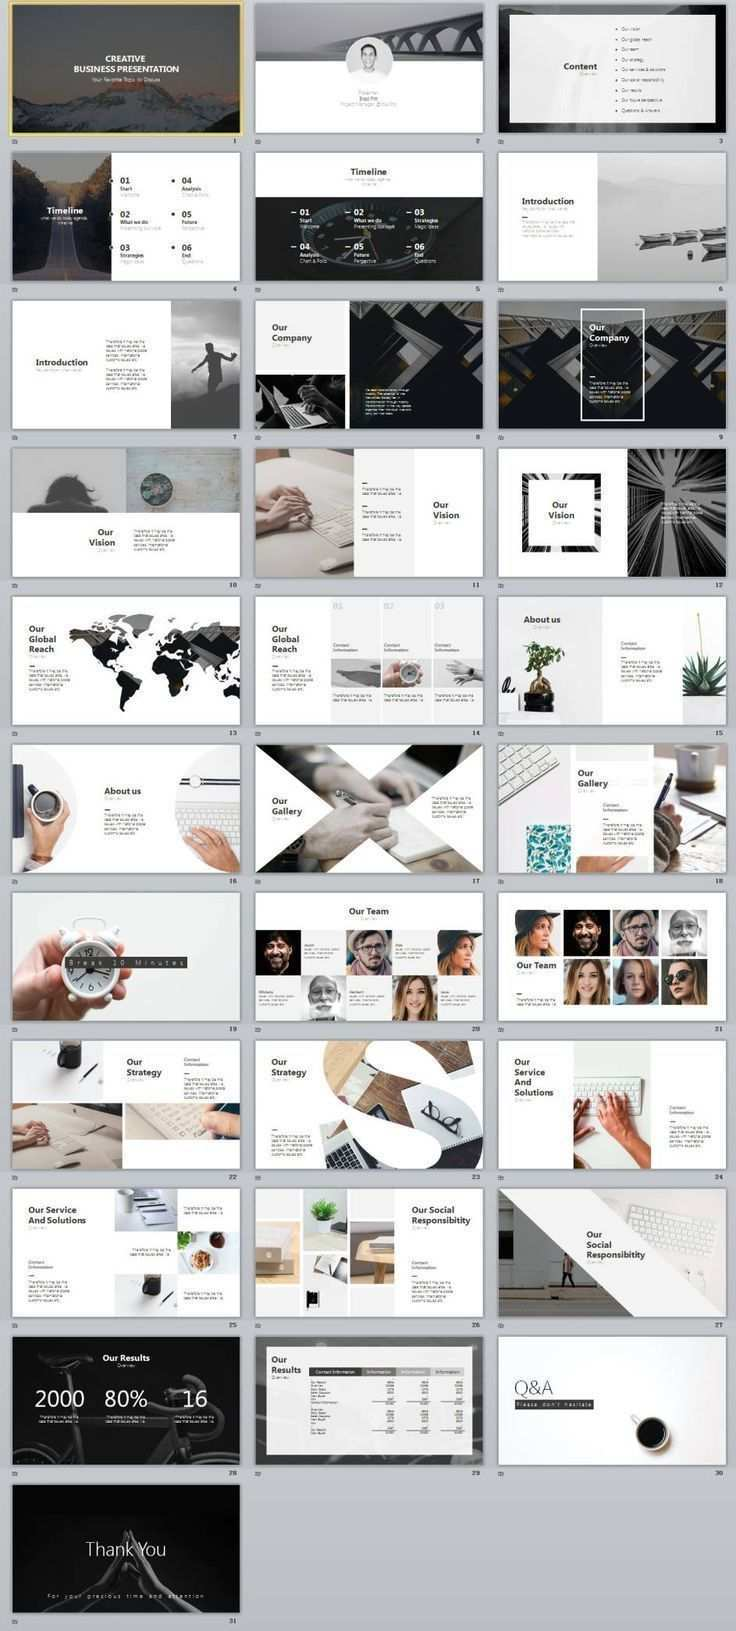 30 Gray Creative Business Design Powerpoint Templates Business Creative Design Gray Portfolio Powerpoint In 2020 Geschaftsdesign Broschure Design Power Point